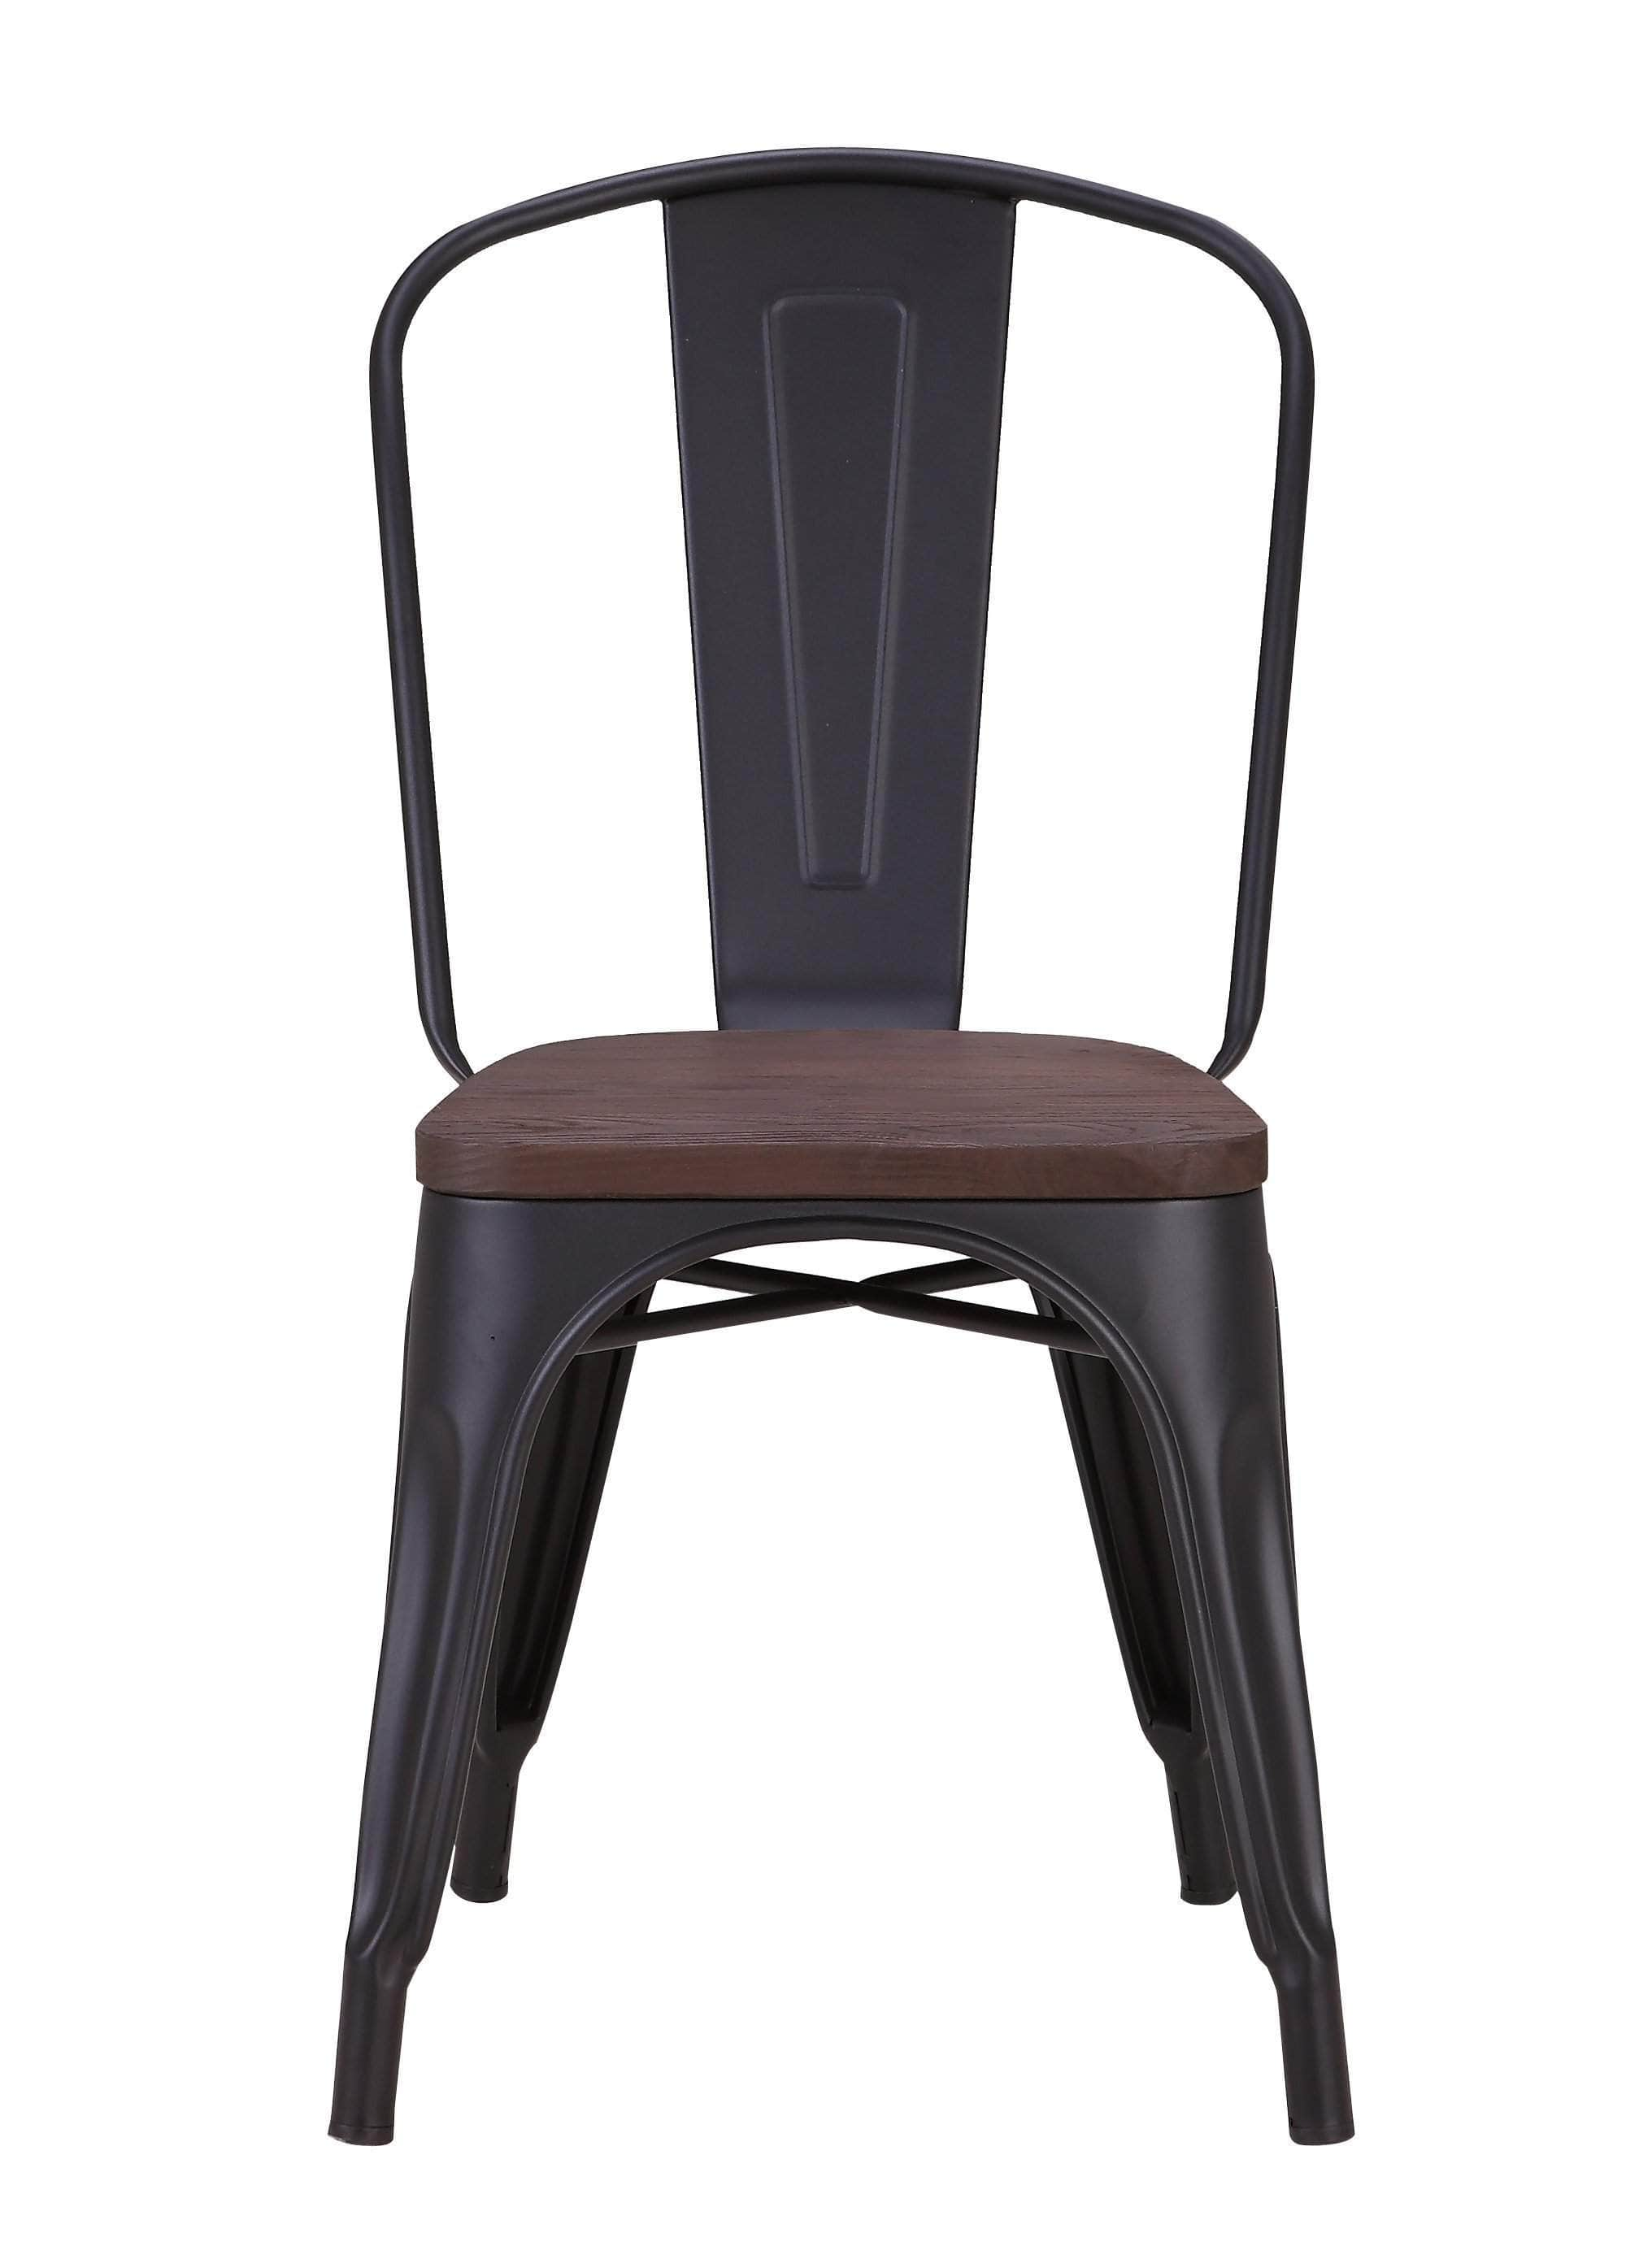 chair bvb armchair chairs by b d tolix en from product restaurant architonic